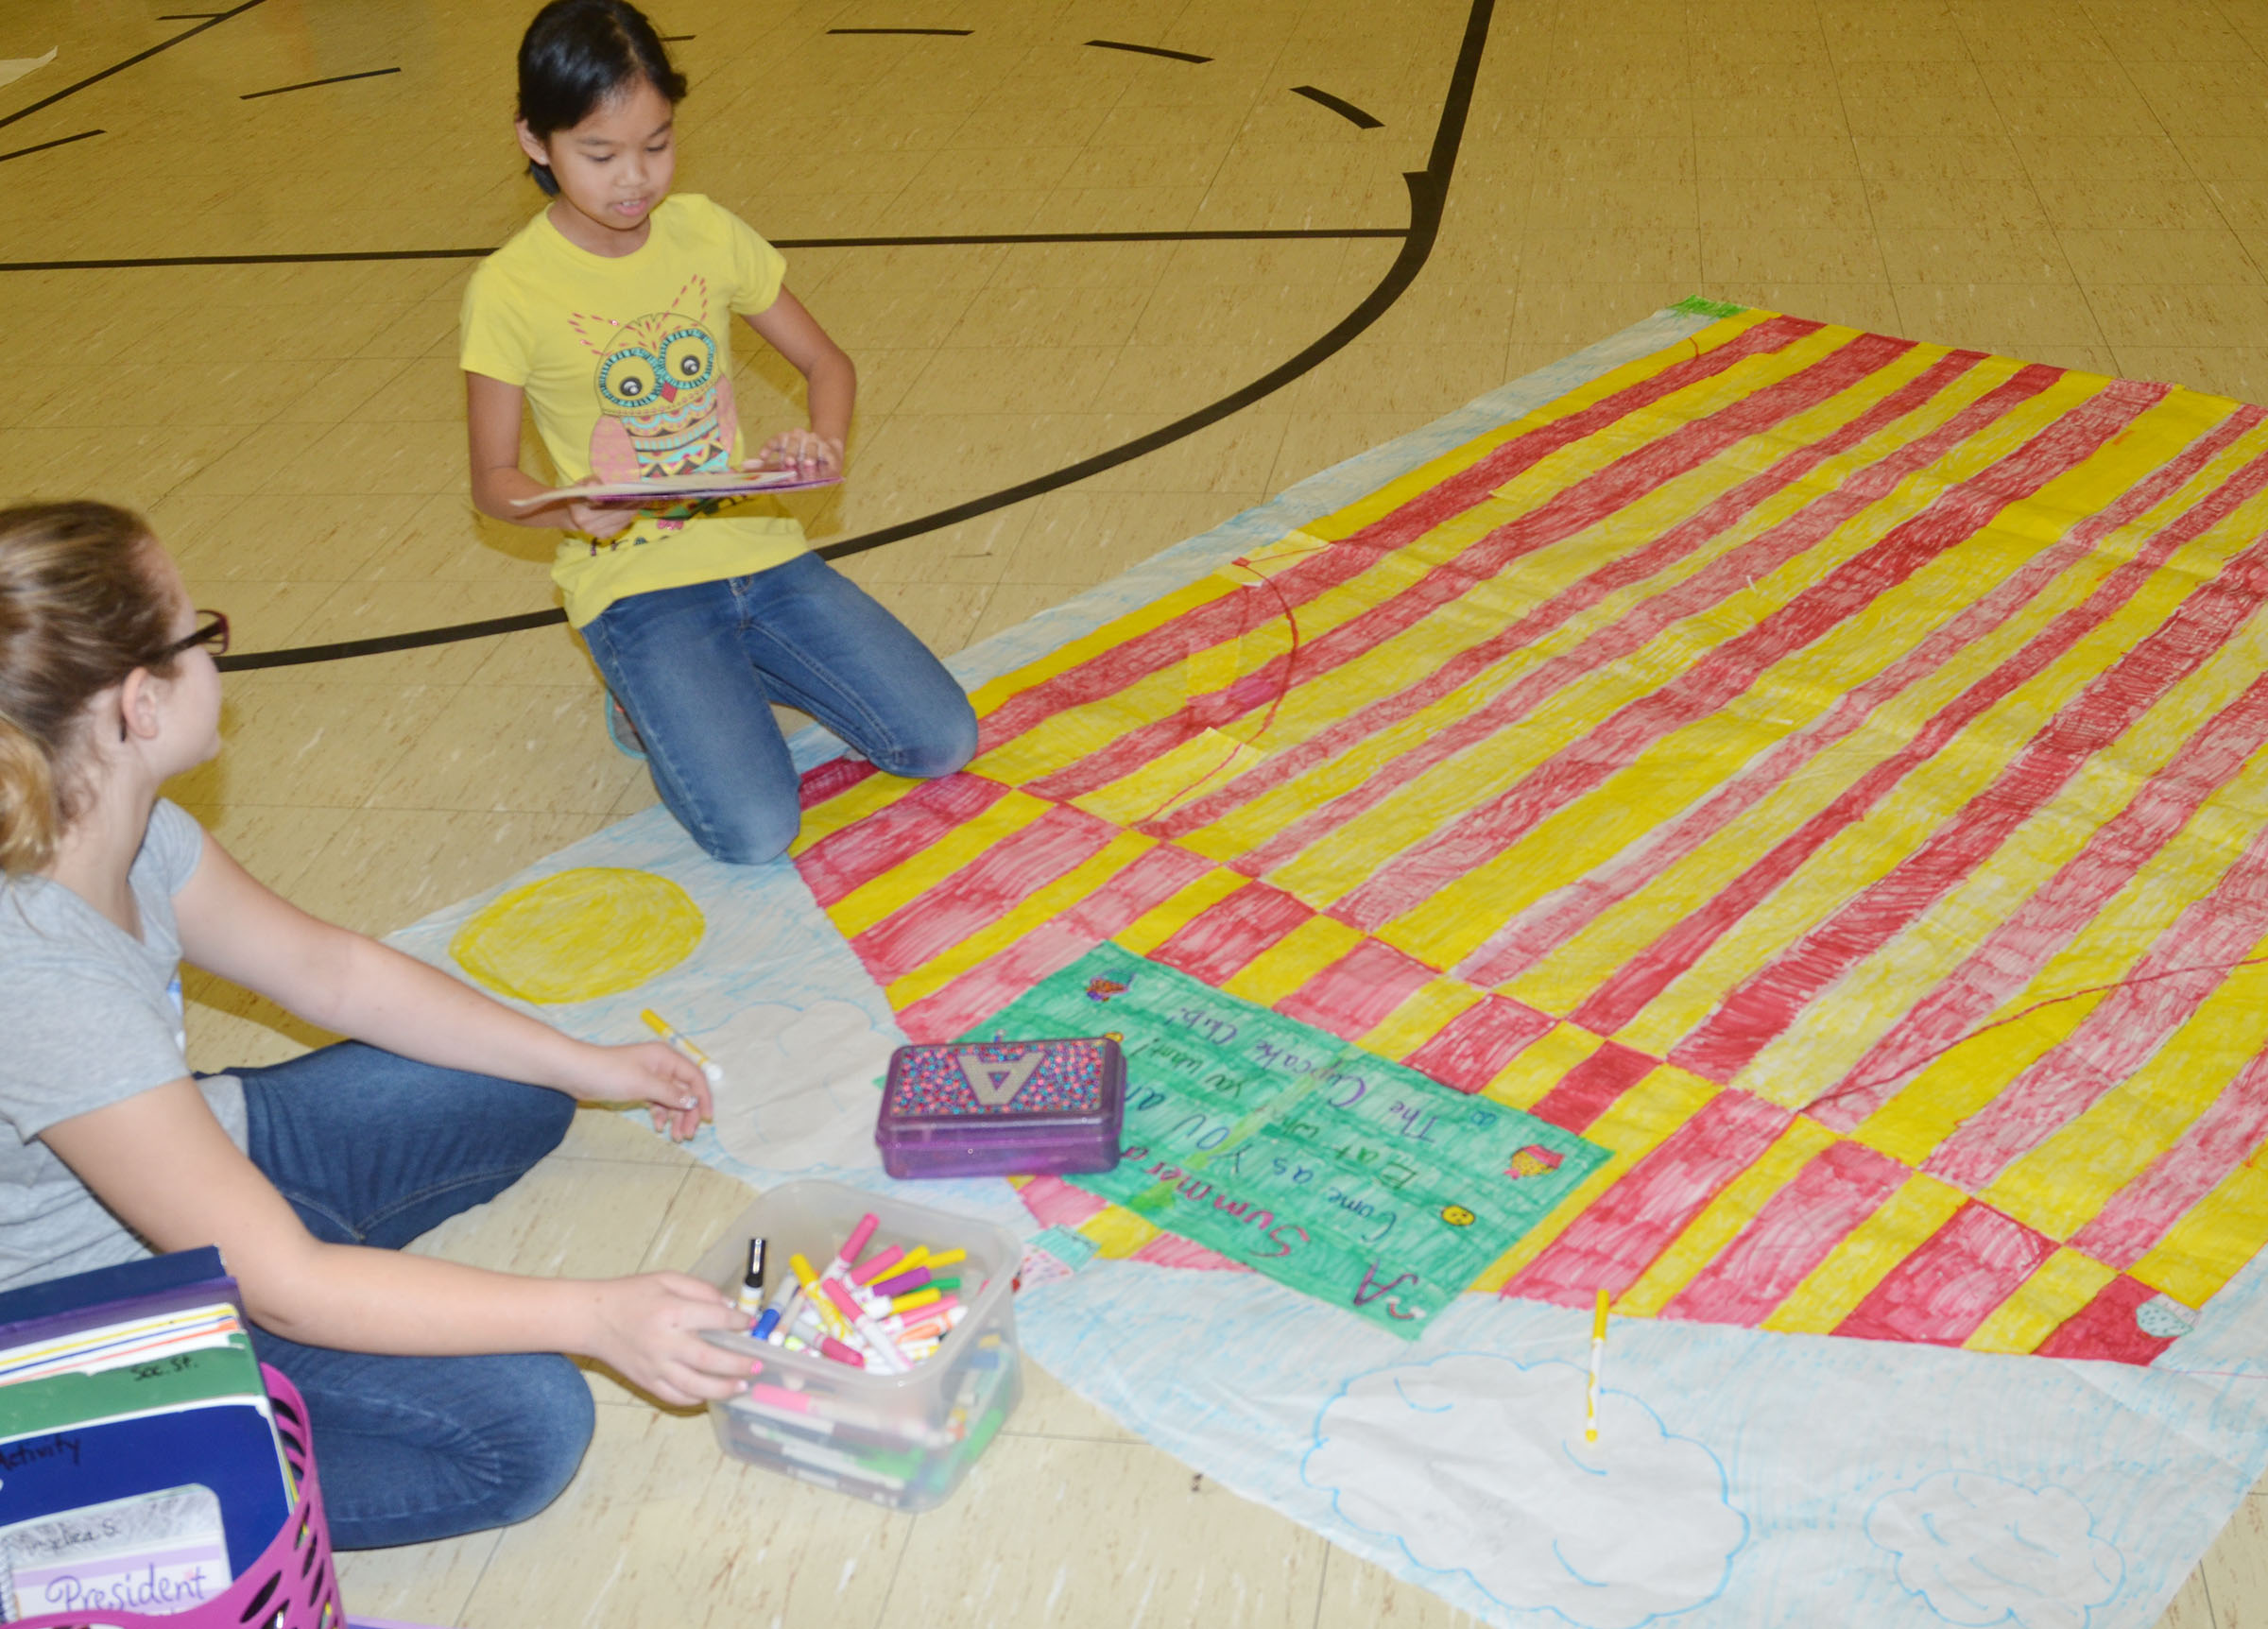 CMS fifth-graders Karlie Cox, at left, and Angelica Seng talk about their drawing.